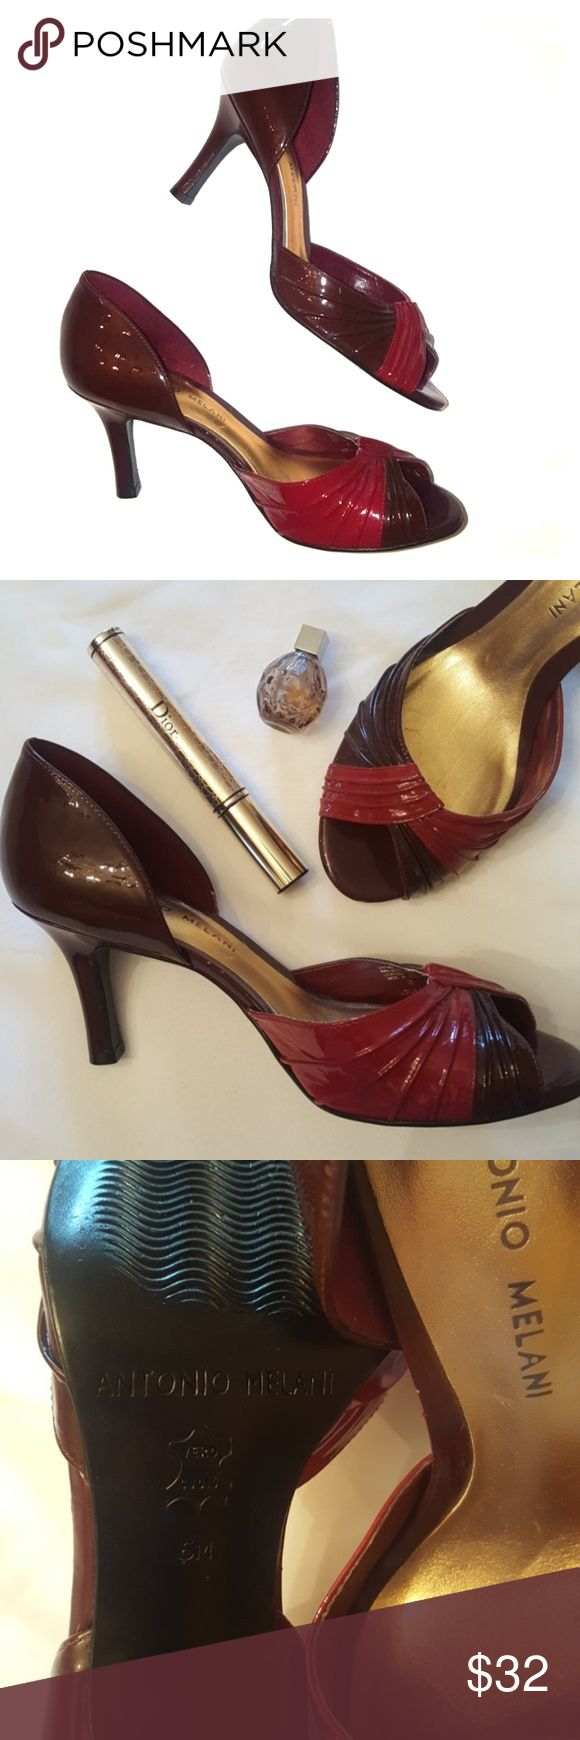 Gorgeous Antonio Milani D'orsay Pumps! Like new. A couple of miniscule flaws, pictured. I needed my reading glasses to see them. Lol! Burgundy, garnet, oxblood.  100% leather (patent). Just gorgeous! Other items pictured are not included in the purchase of this item. Some are listed separately for sale. ANTONIO MELANI Shoes Heels